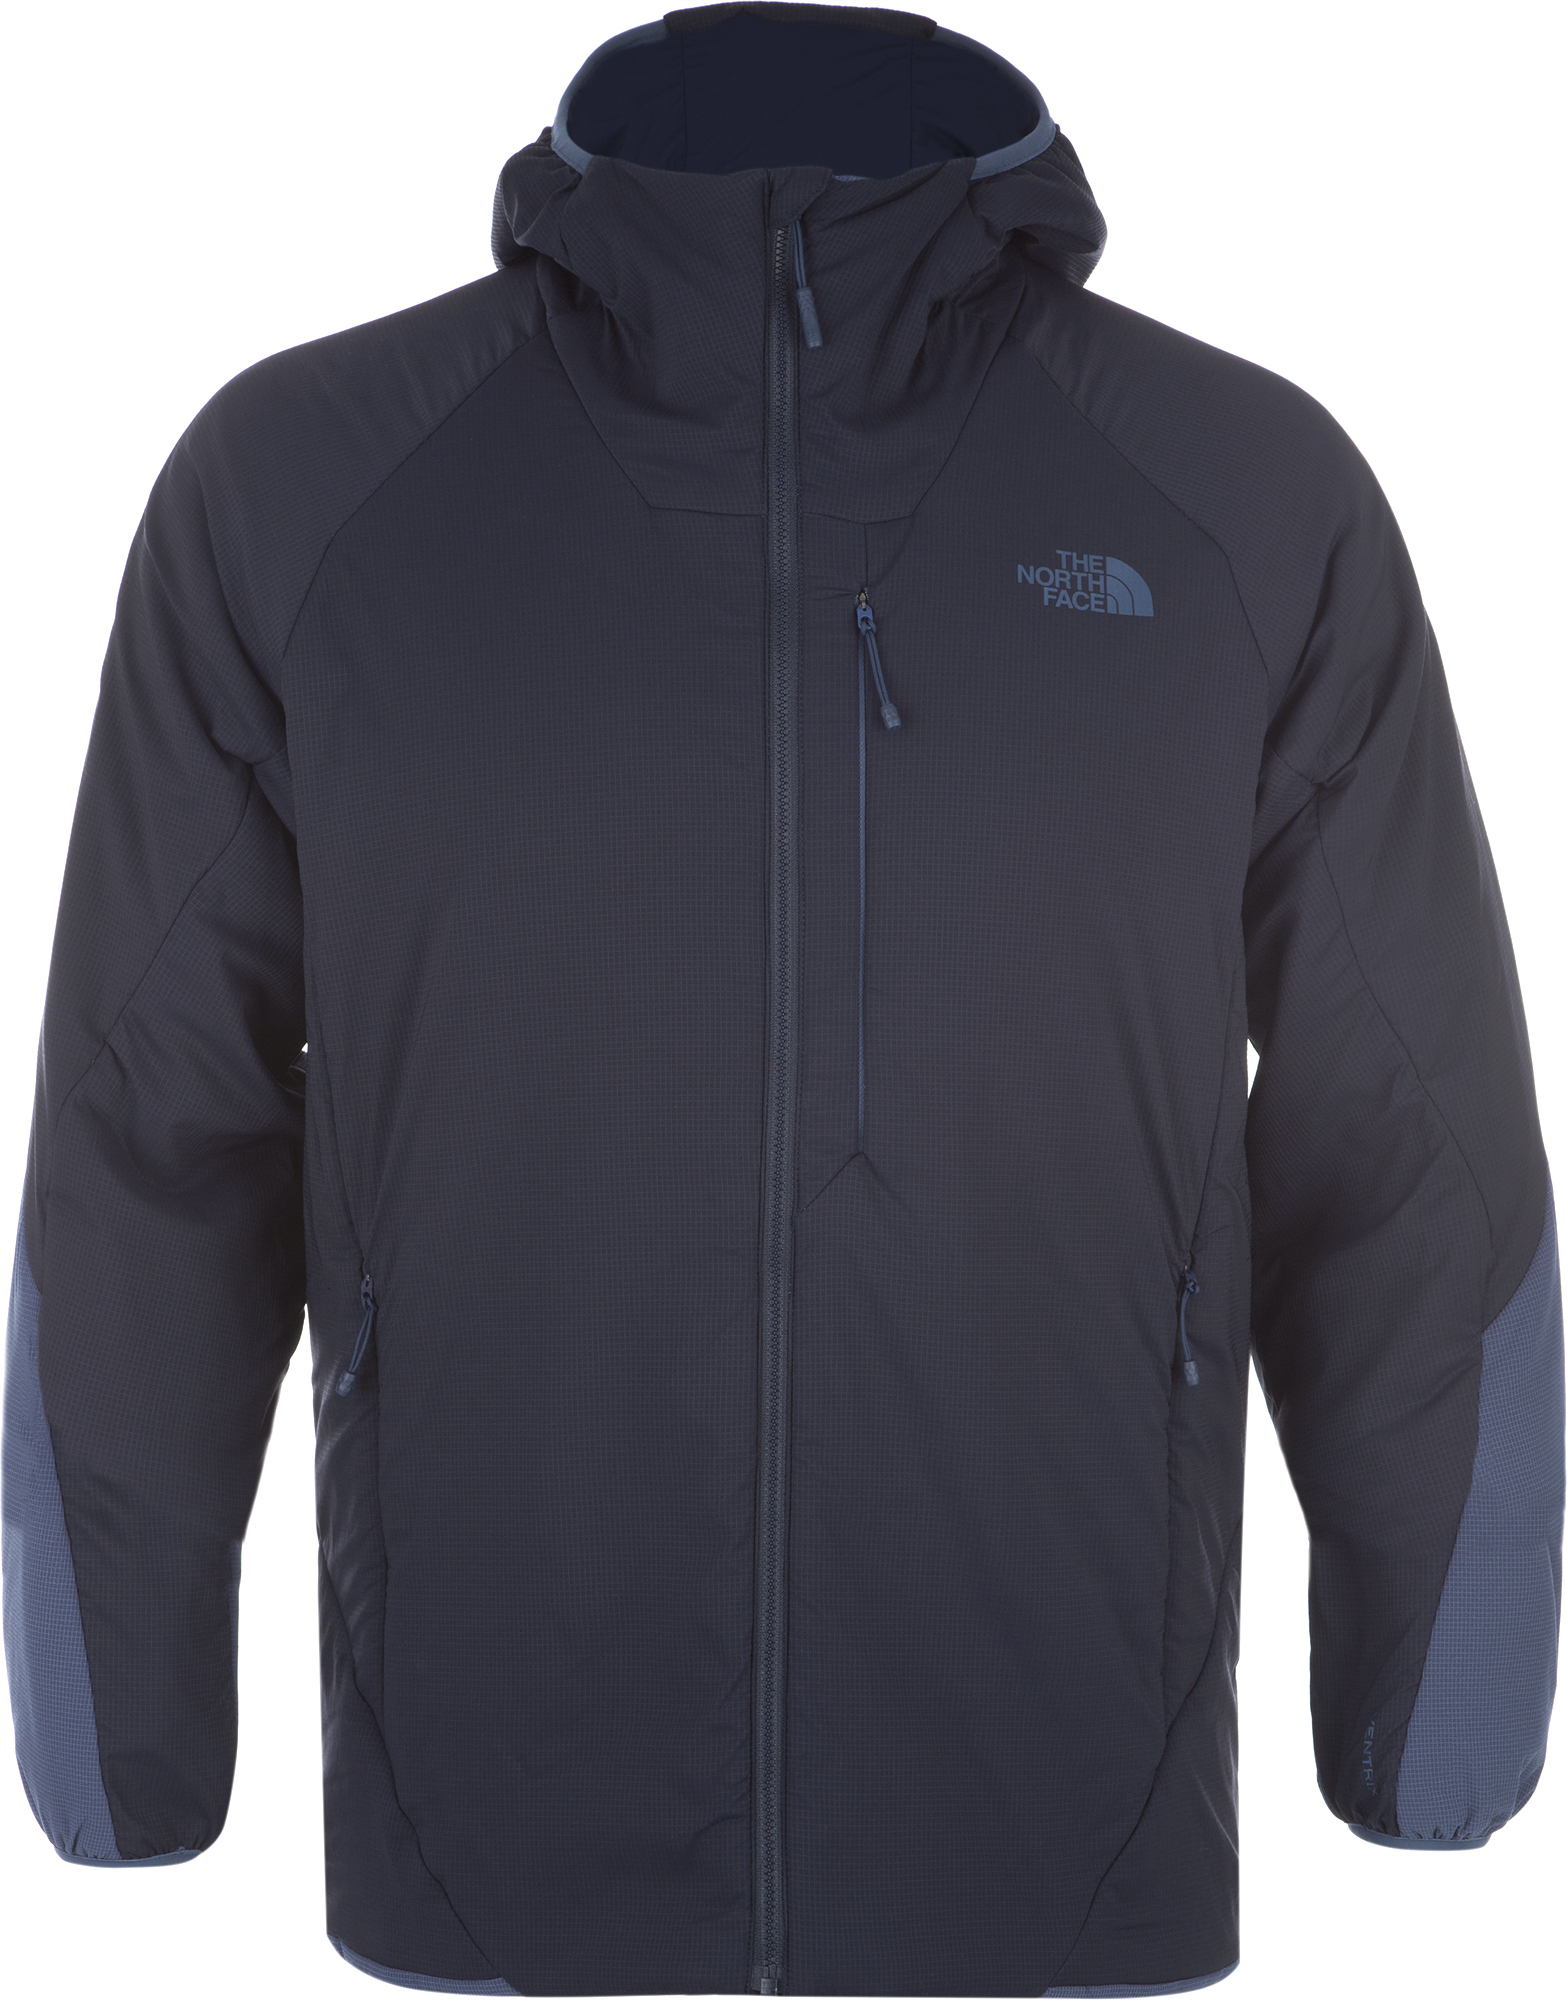 The North Face Куртка утепленная мужская The North Face Ventrix, размер 48 жилет the north face the north face thermoball